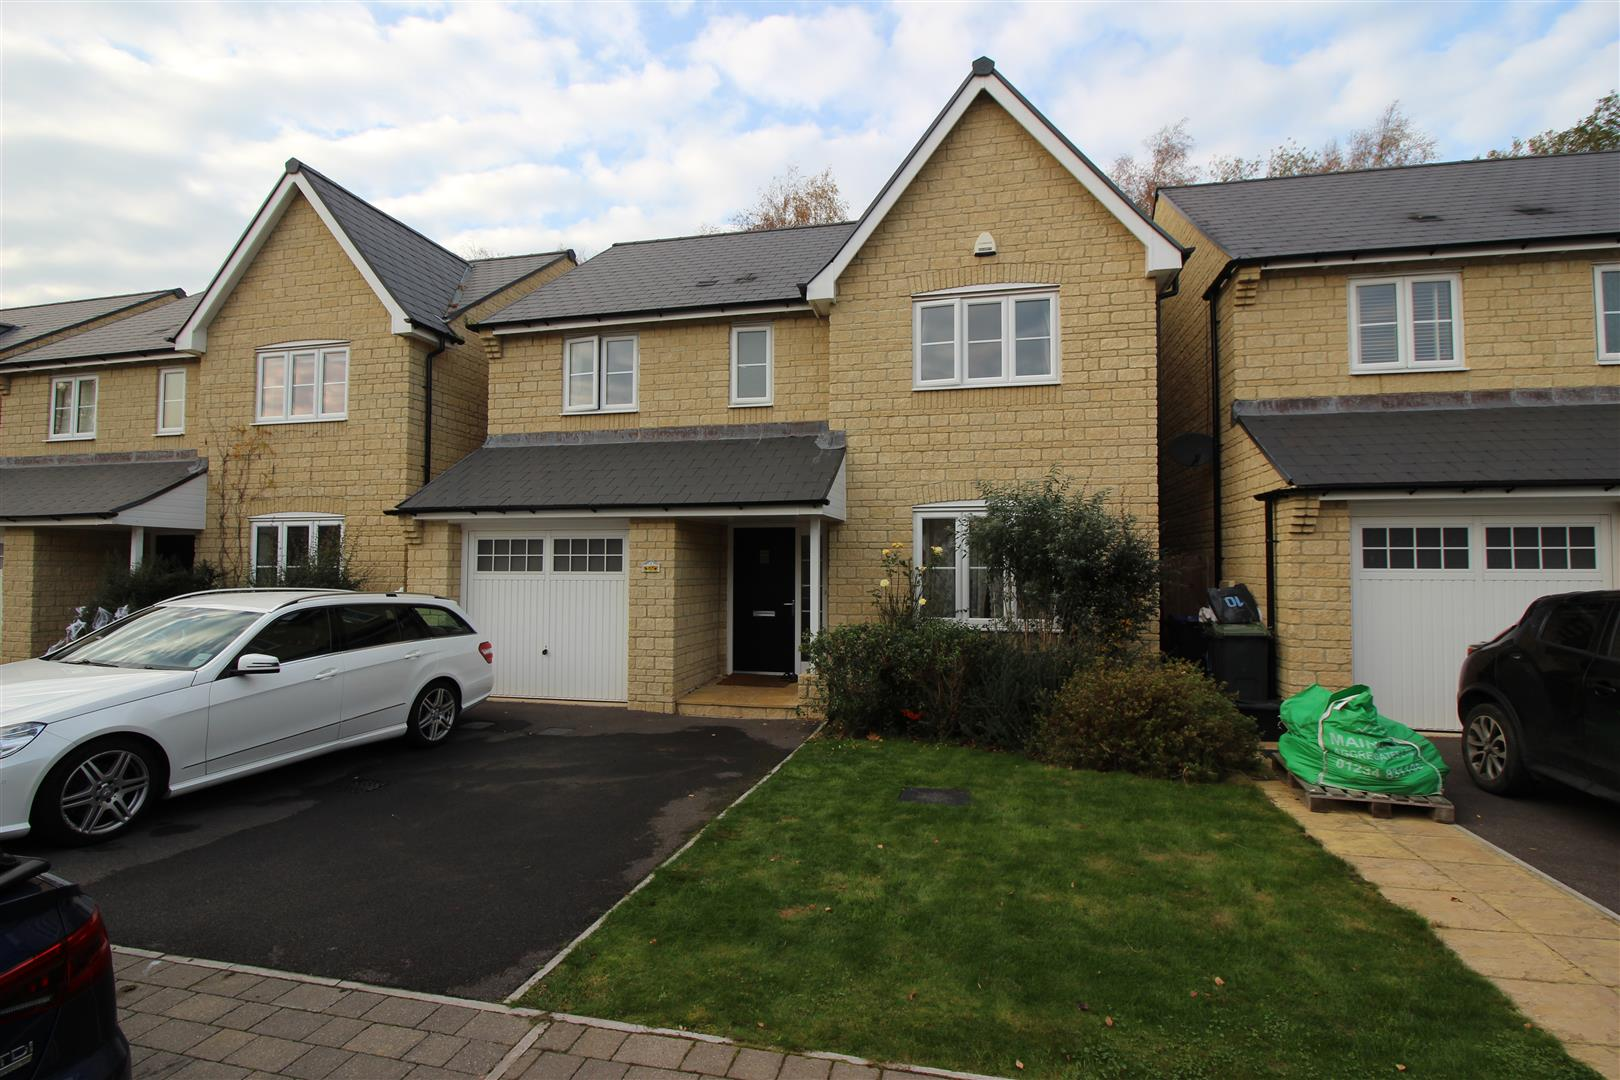 4 Bedrooms Detached House for sale in The Stoneworks, Neston, Corsham